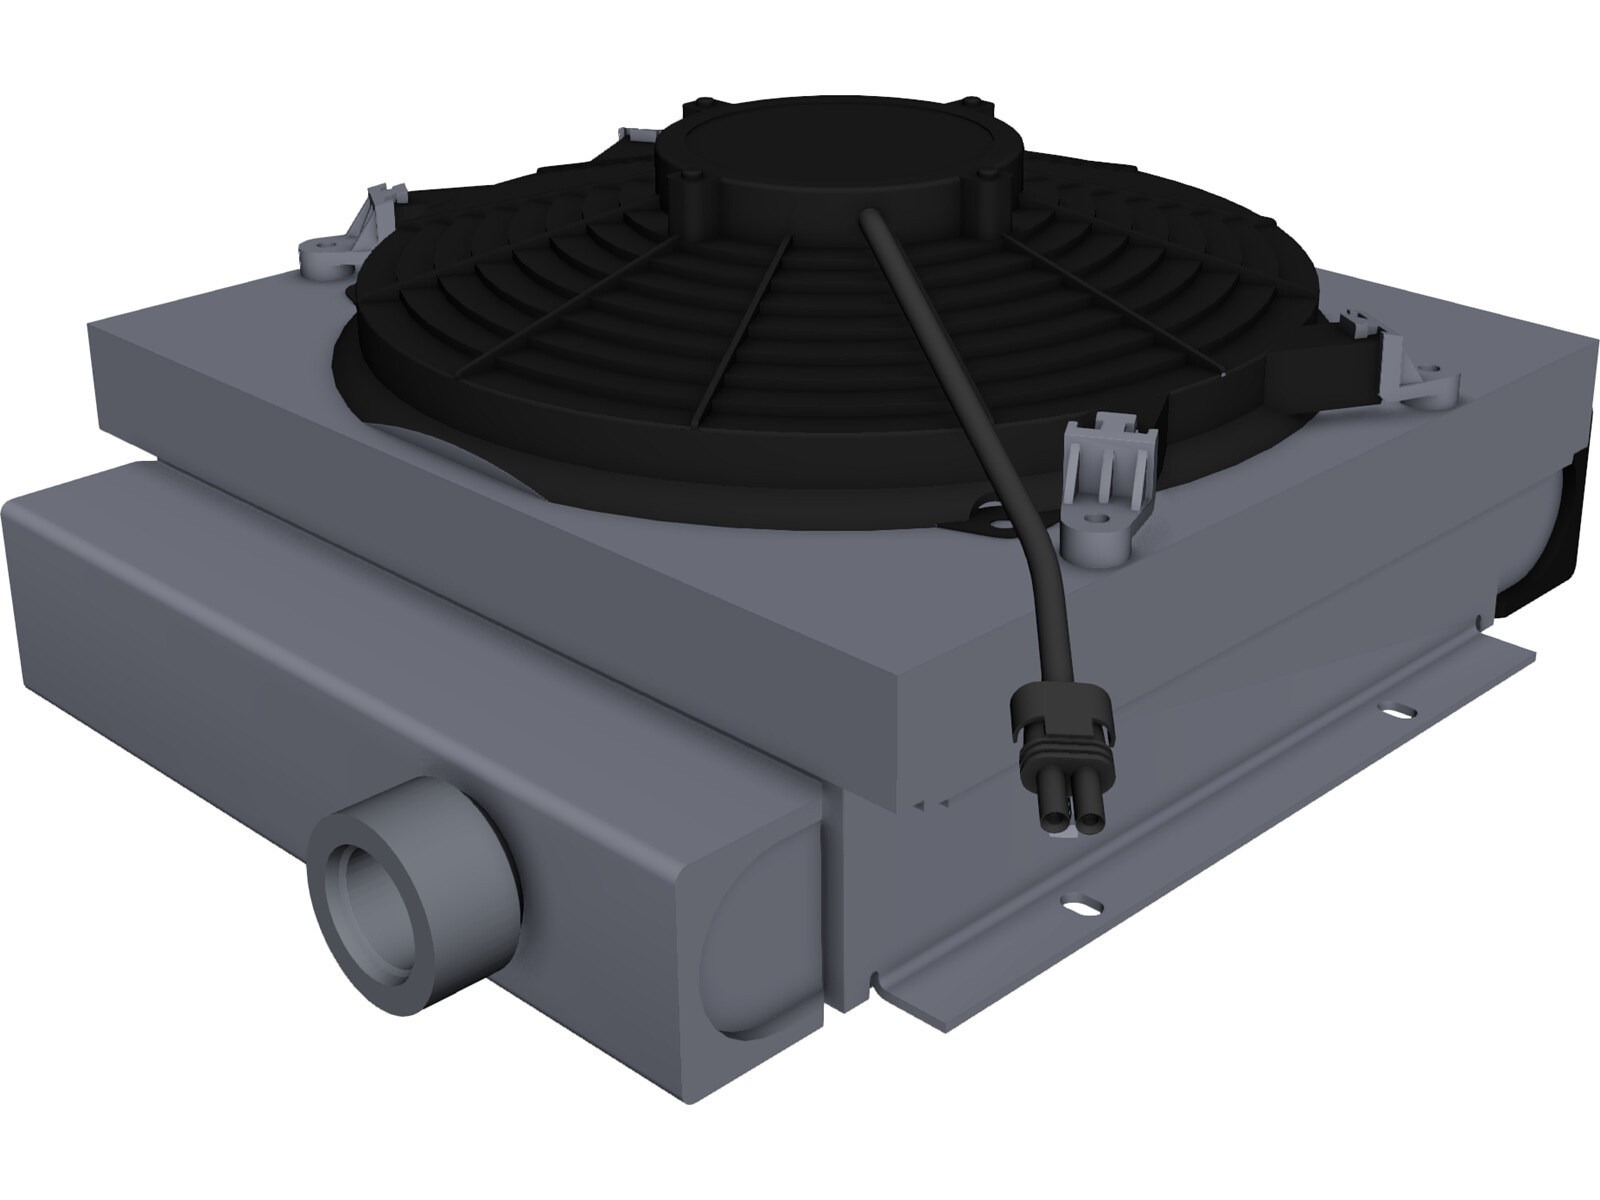 Intercooler DCS-16-12 3D CAD Model